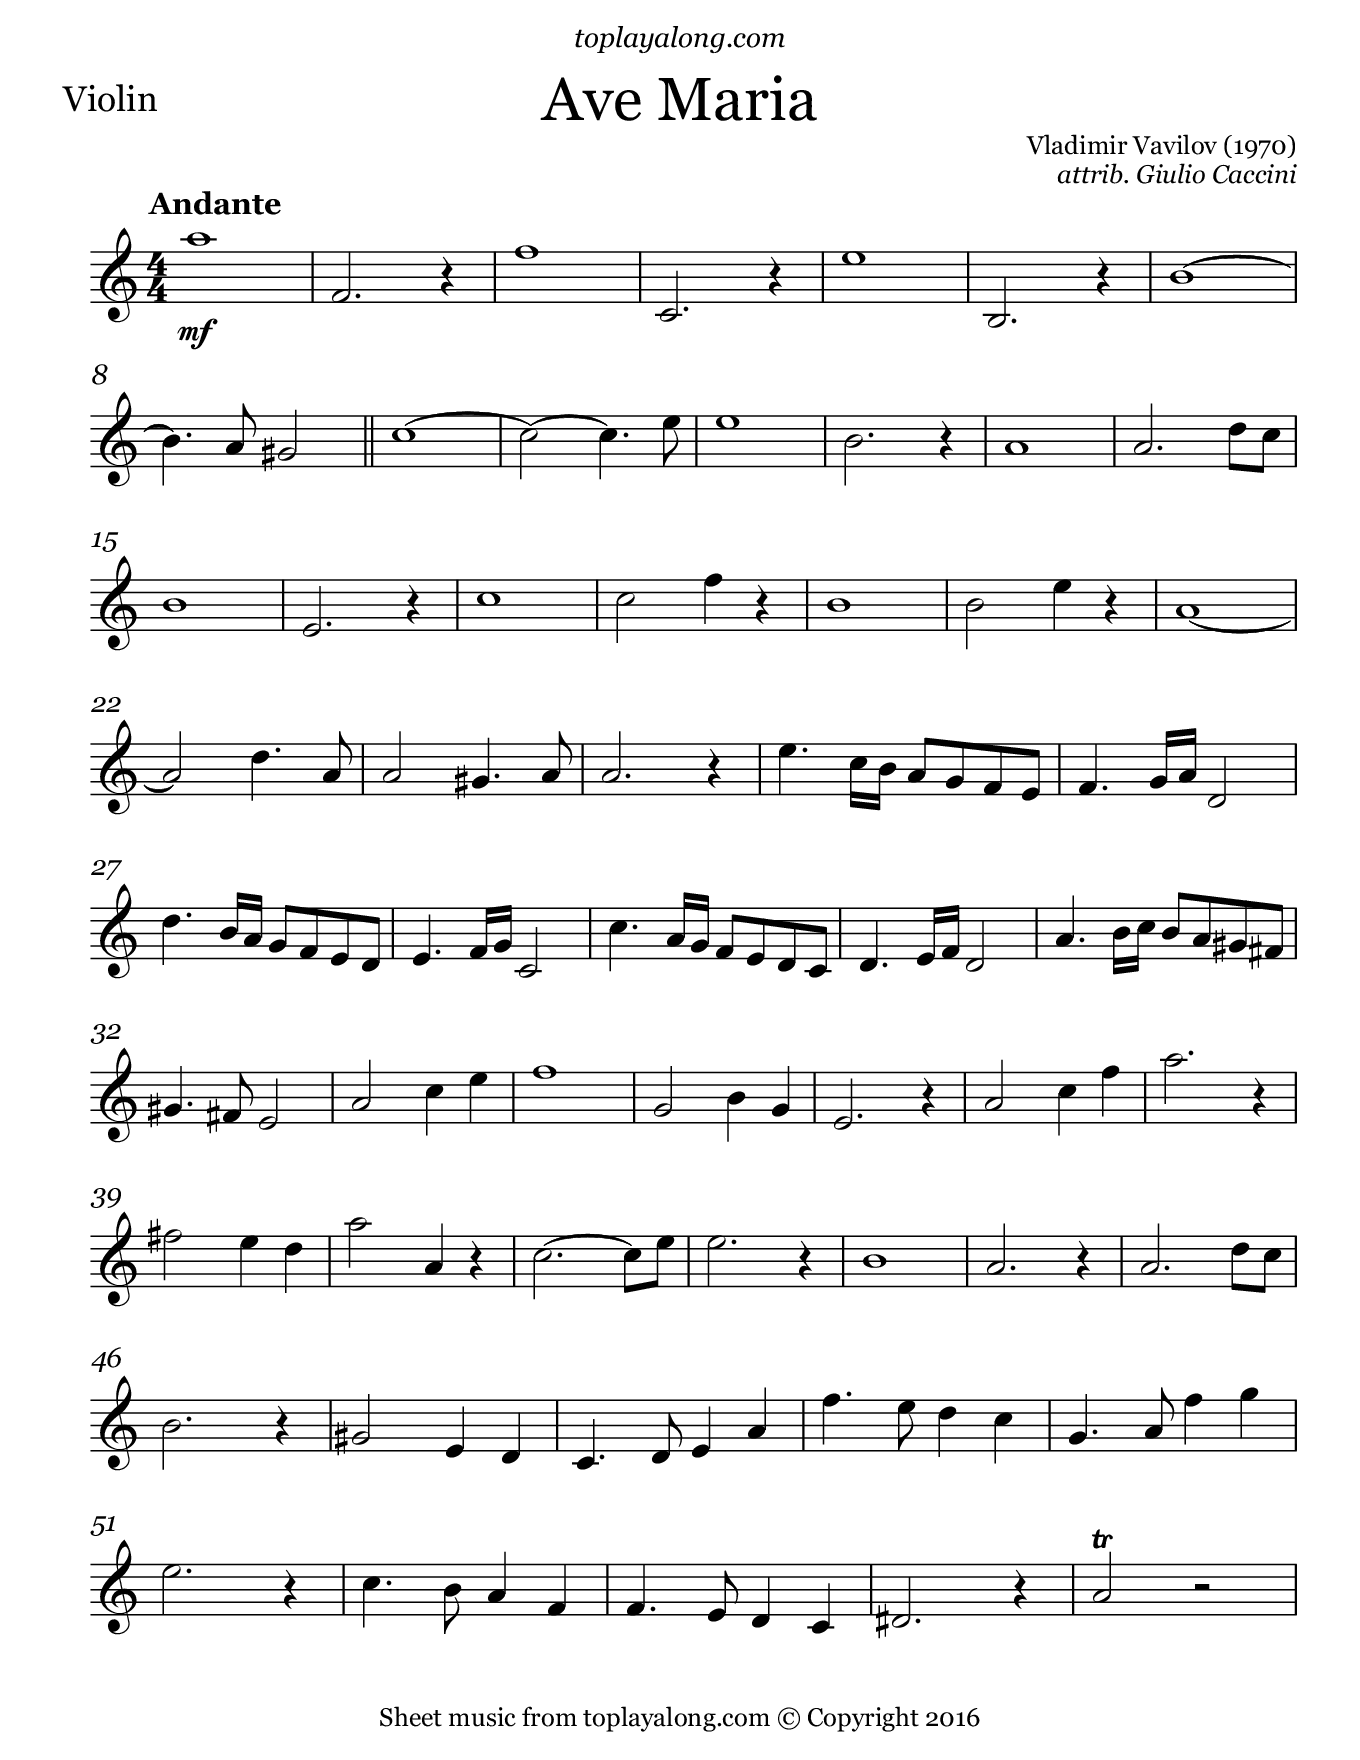 Ave Maria by Vavilov. Sheet music for Violin, page 1.